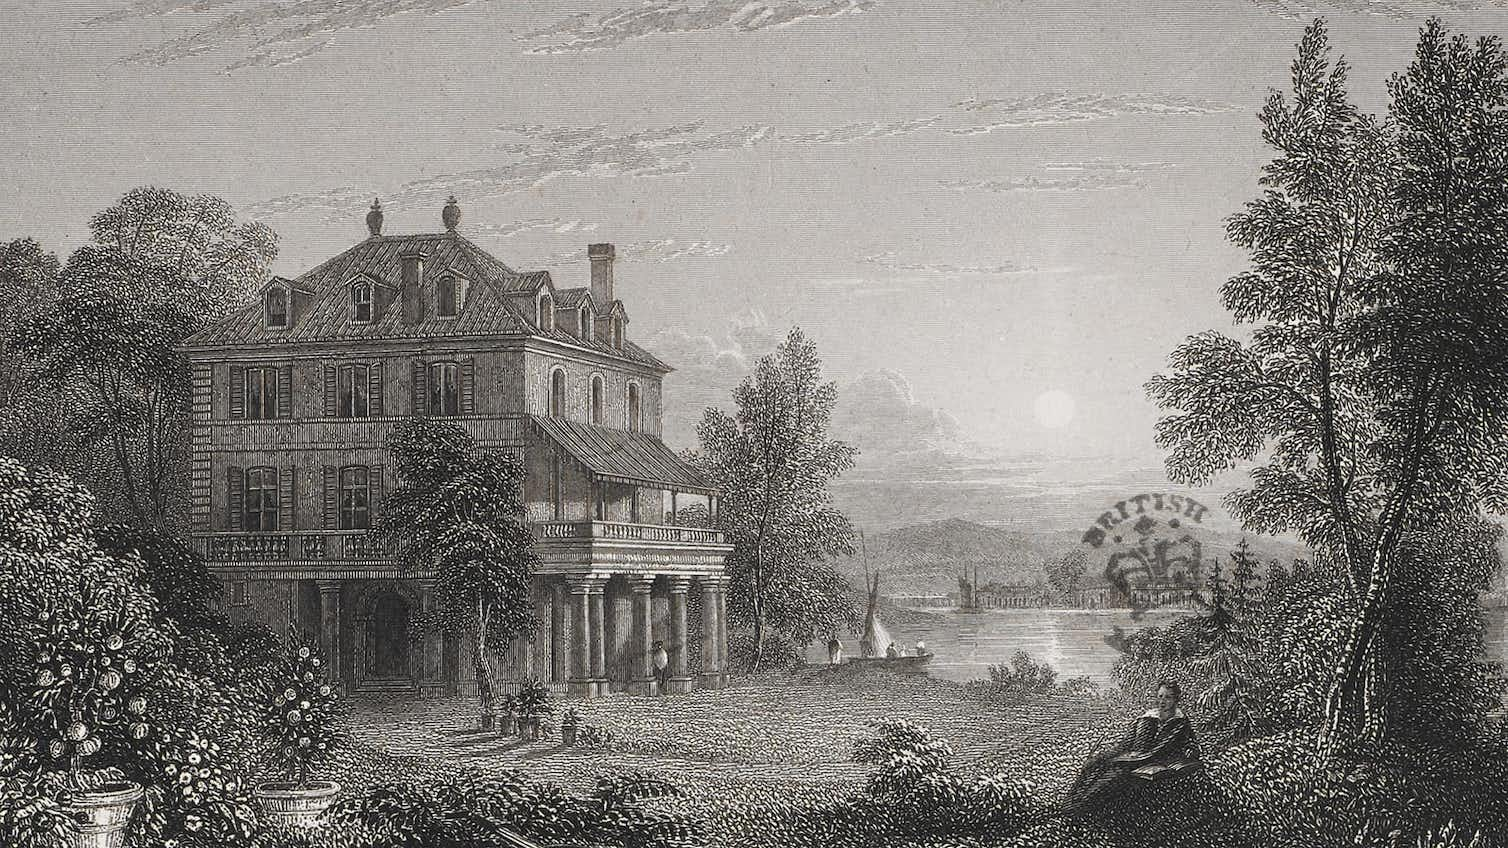 The site of the ghost story writing contest: Villa Diodati at Lake Geneva, 1833. Credit: Edward Finden/British Library